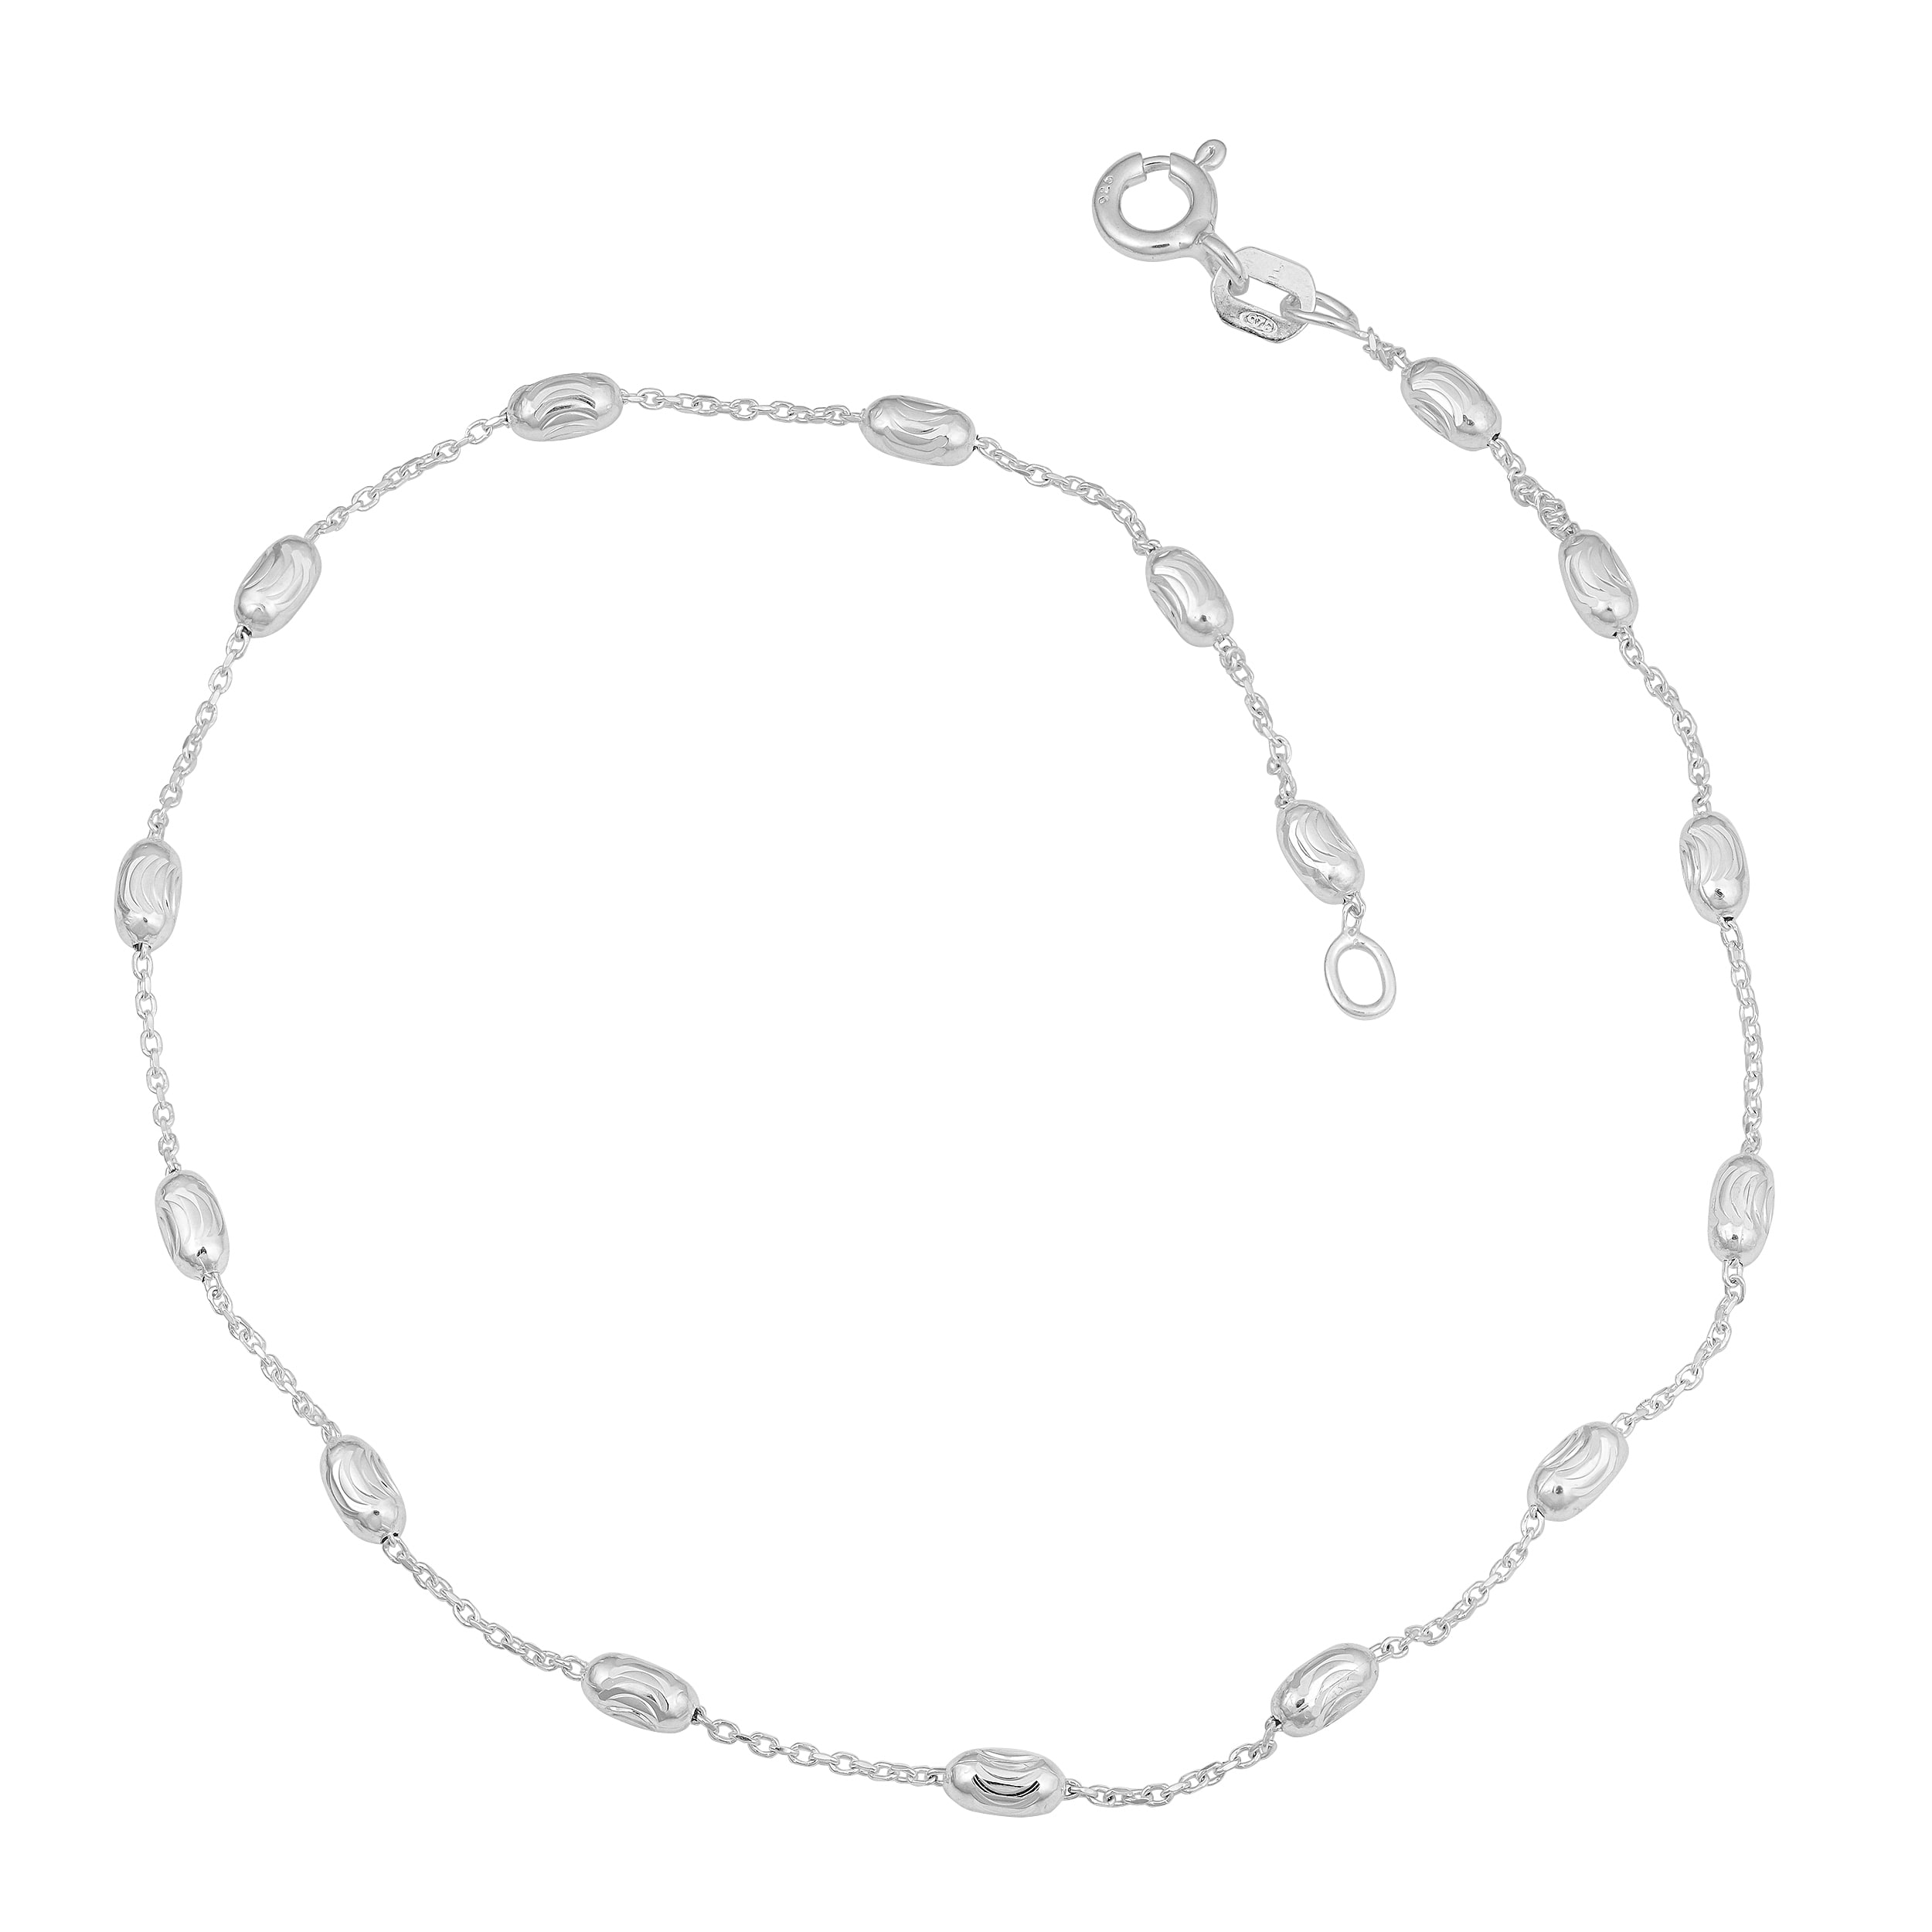 simplywhispers nickel anklet tiny free with safe hypoallergenic charms for allergy inch cross jewelry inches to silver